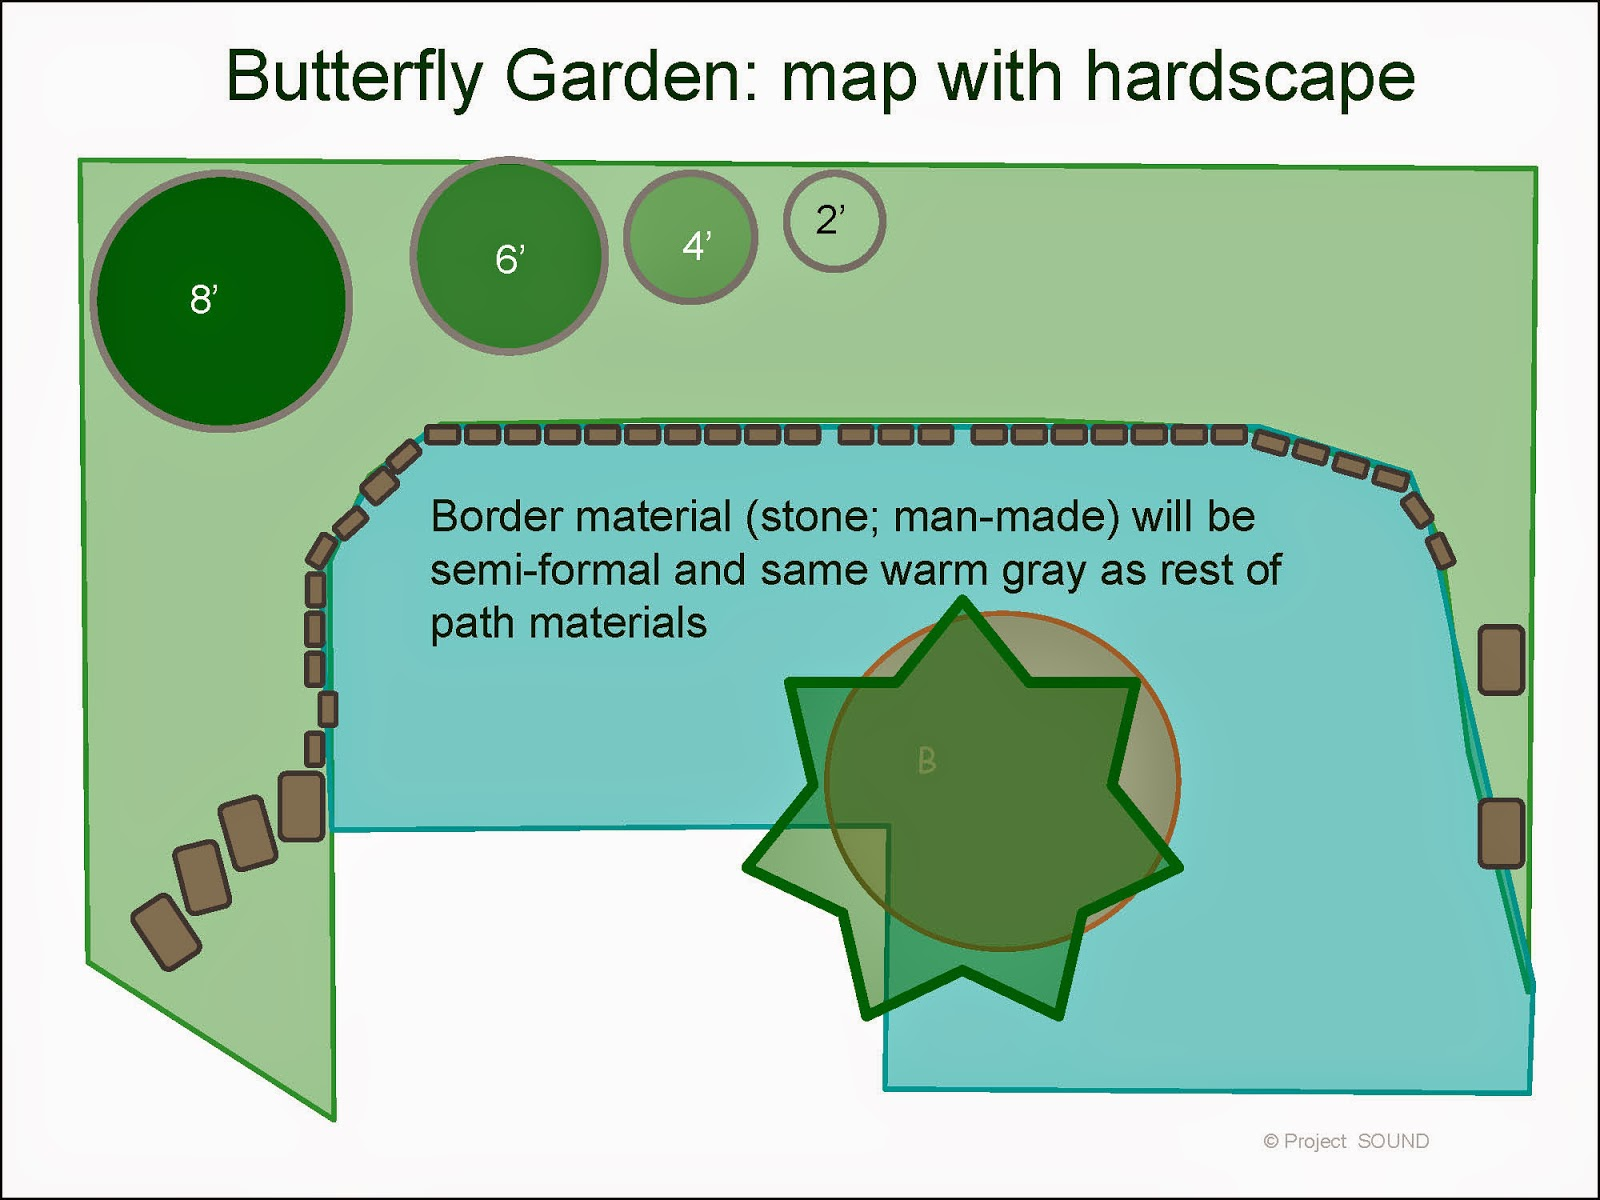 Mother Natureu0027s Backyard   A Water Wise Garden: Designing Your New  California Garden: 11. Creating A Design Plan, Part 3